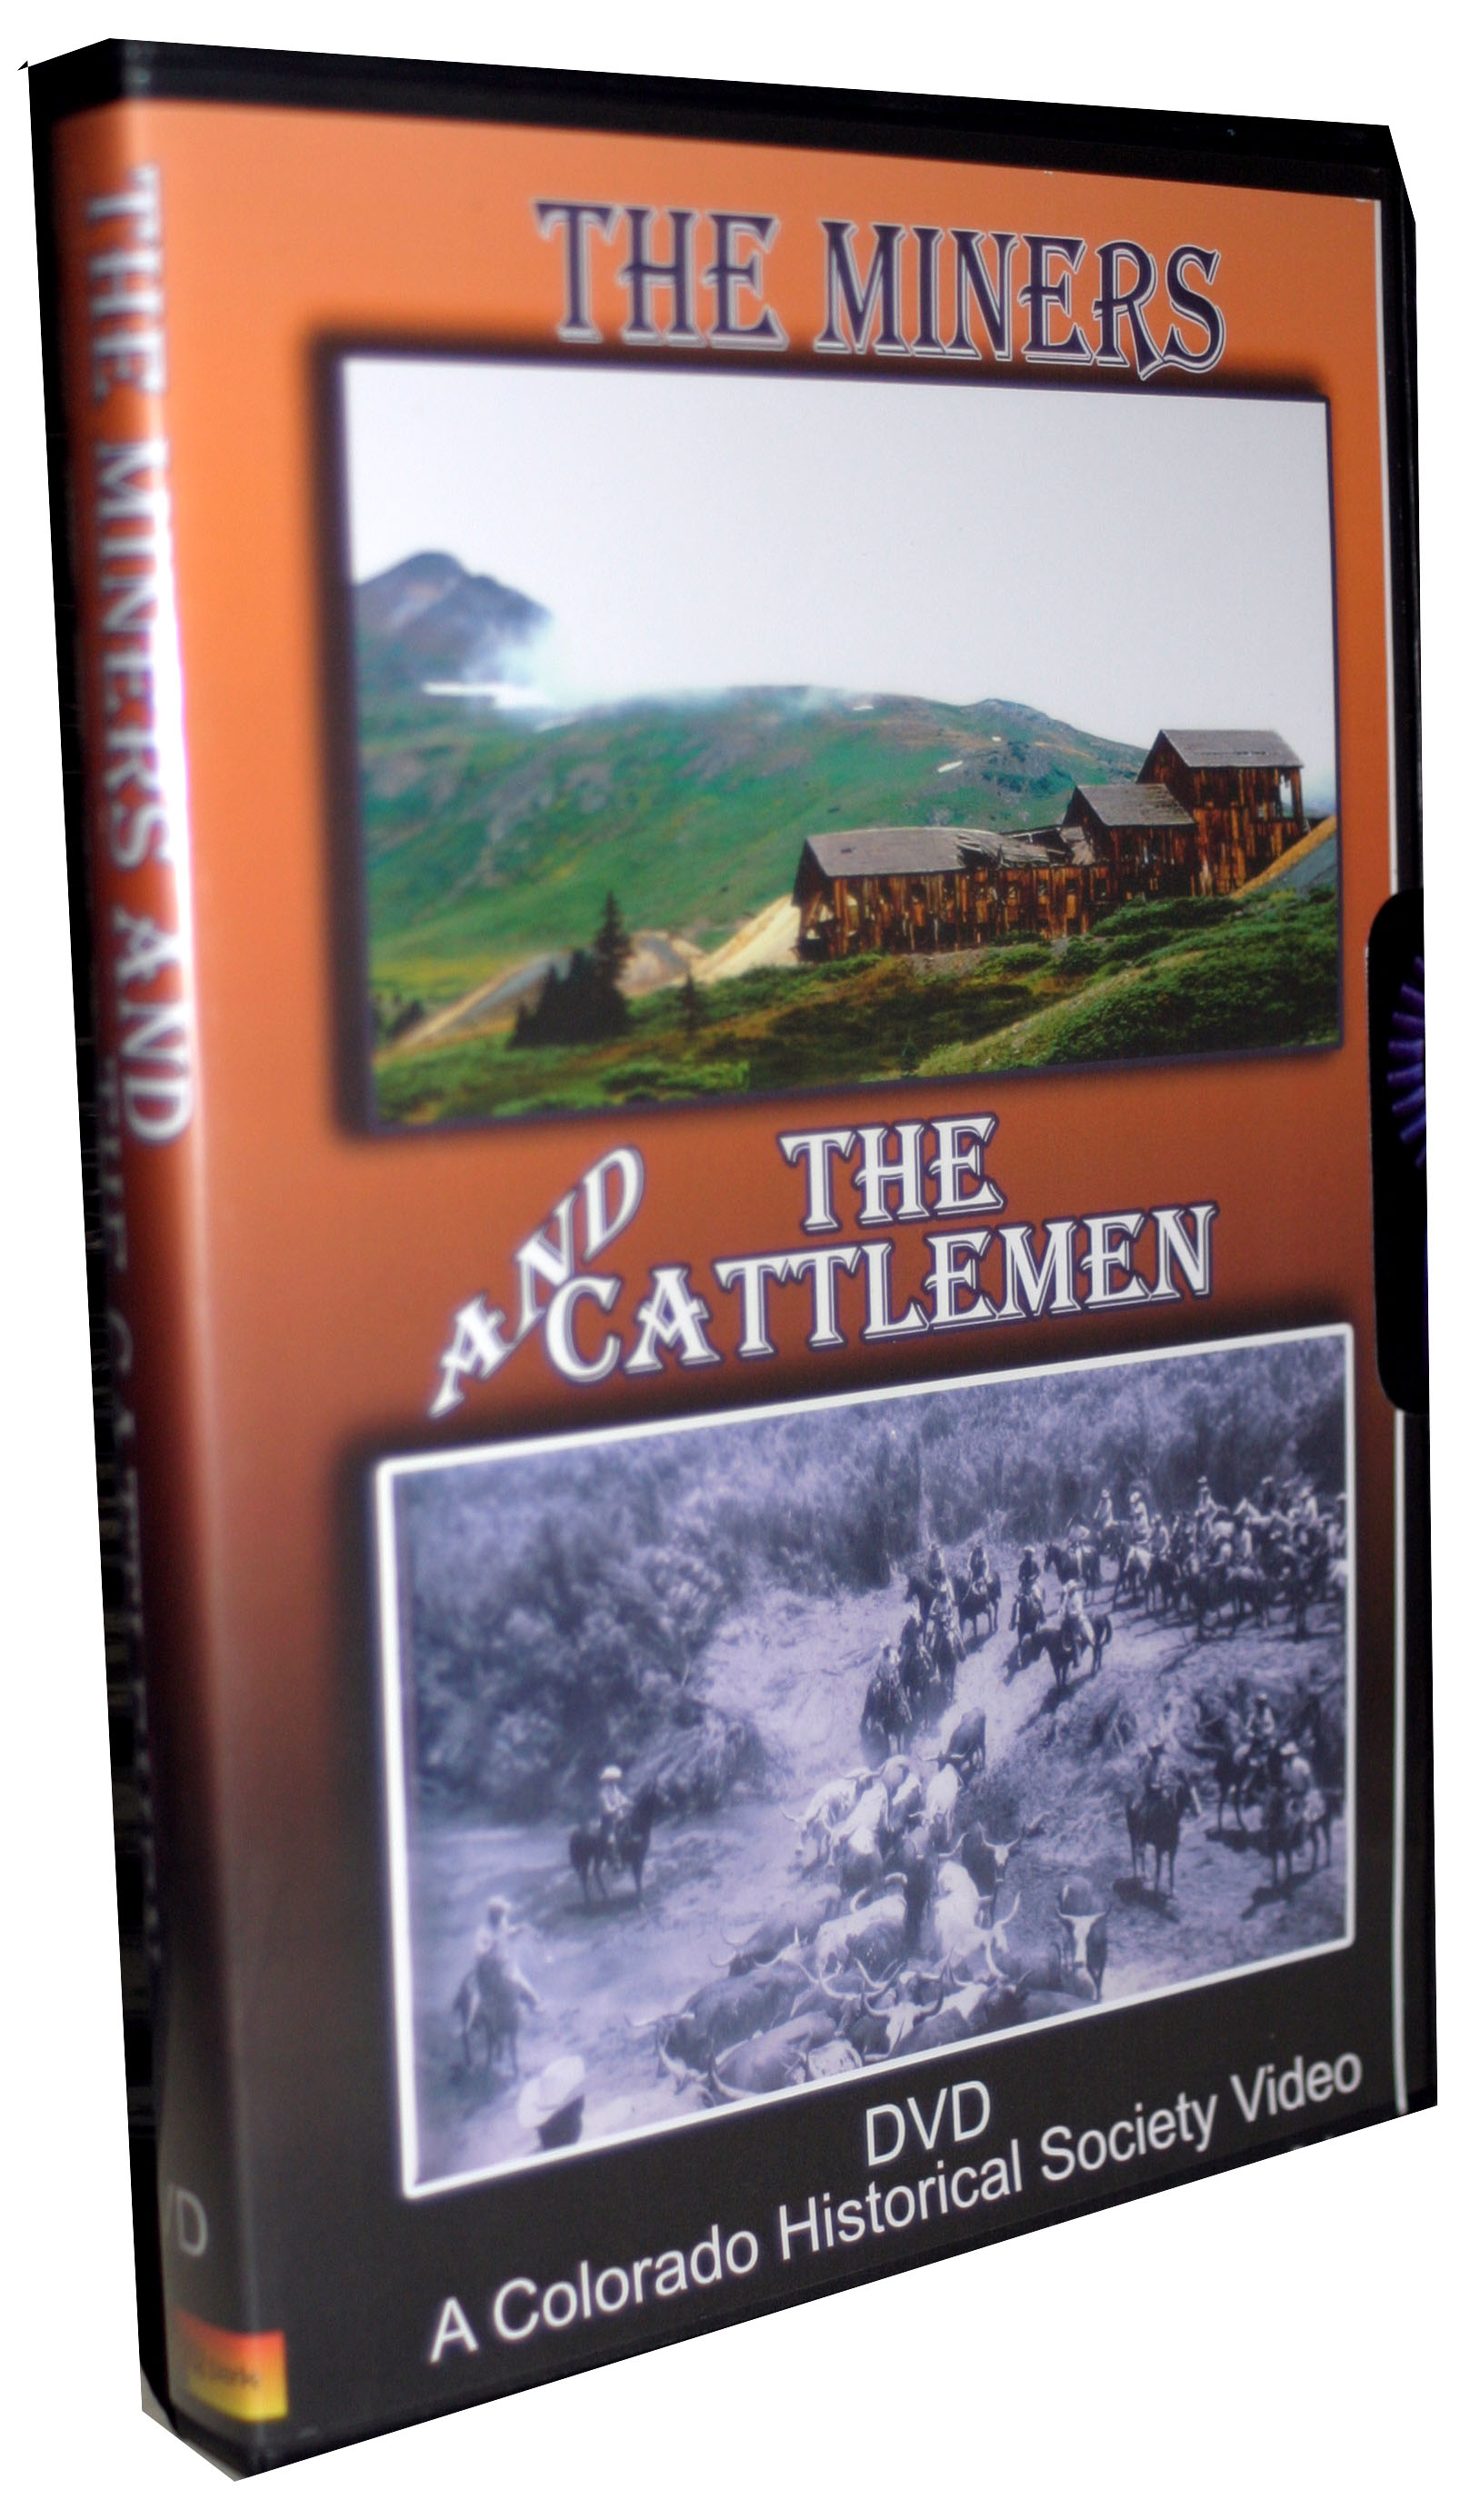 The Cattlemen<BR> The Minners